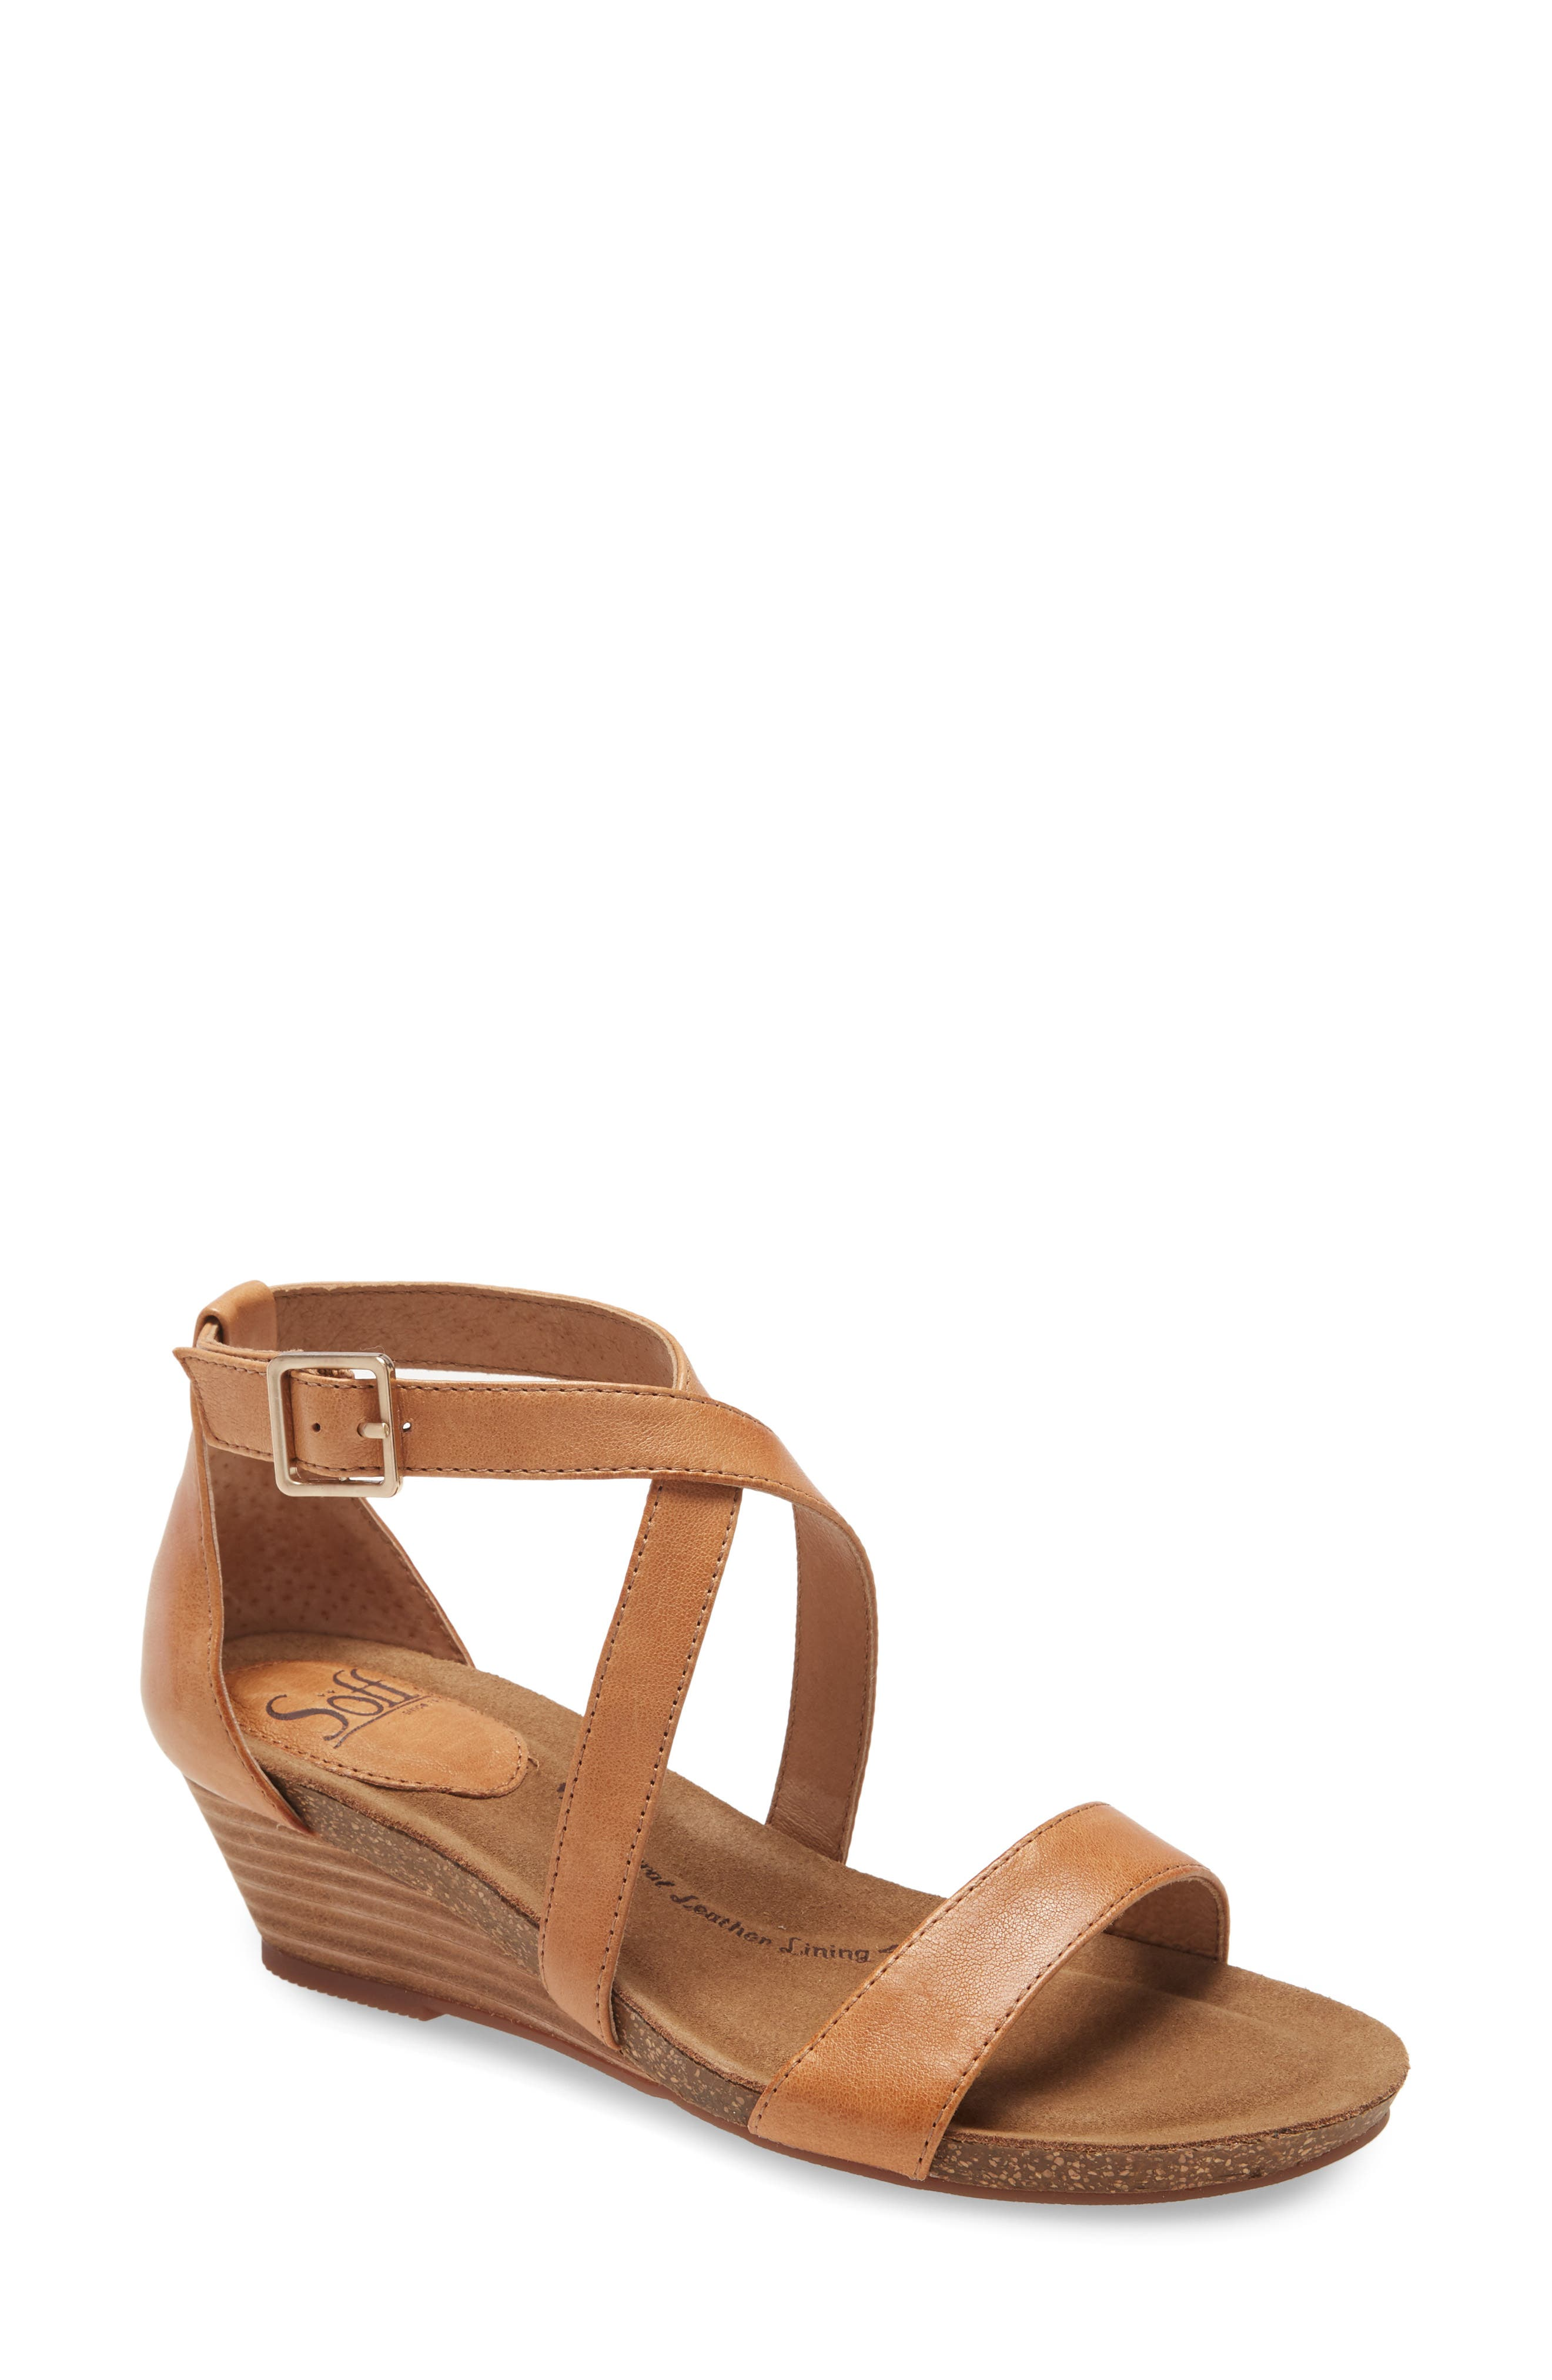 Crossed and buckled straps stylishly secure this wedge sandal that features a plush, sink-in footbed for all-day comfort. Style Name: Sofft Valeryn Wedge Sandal (Women). Style Number: 5993838. Available in stores.